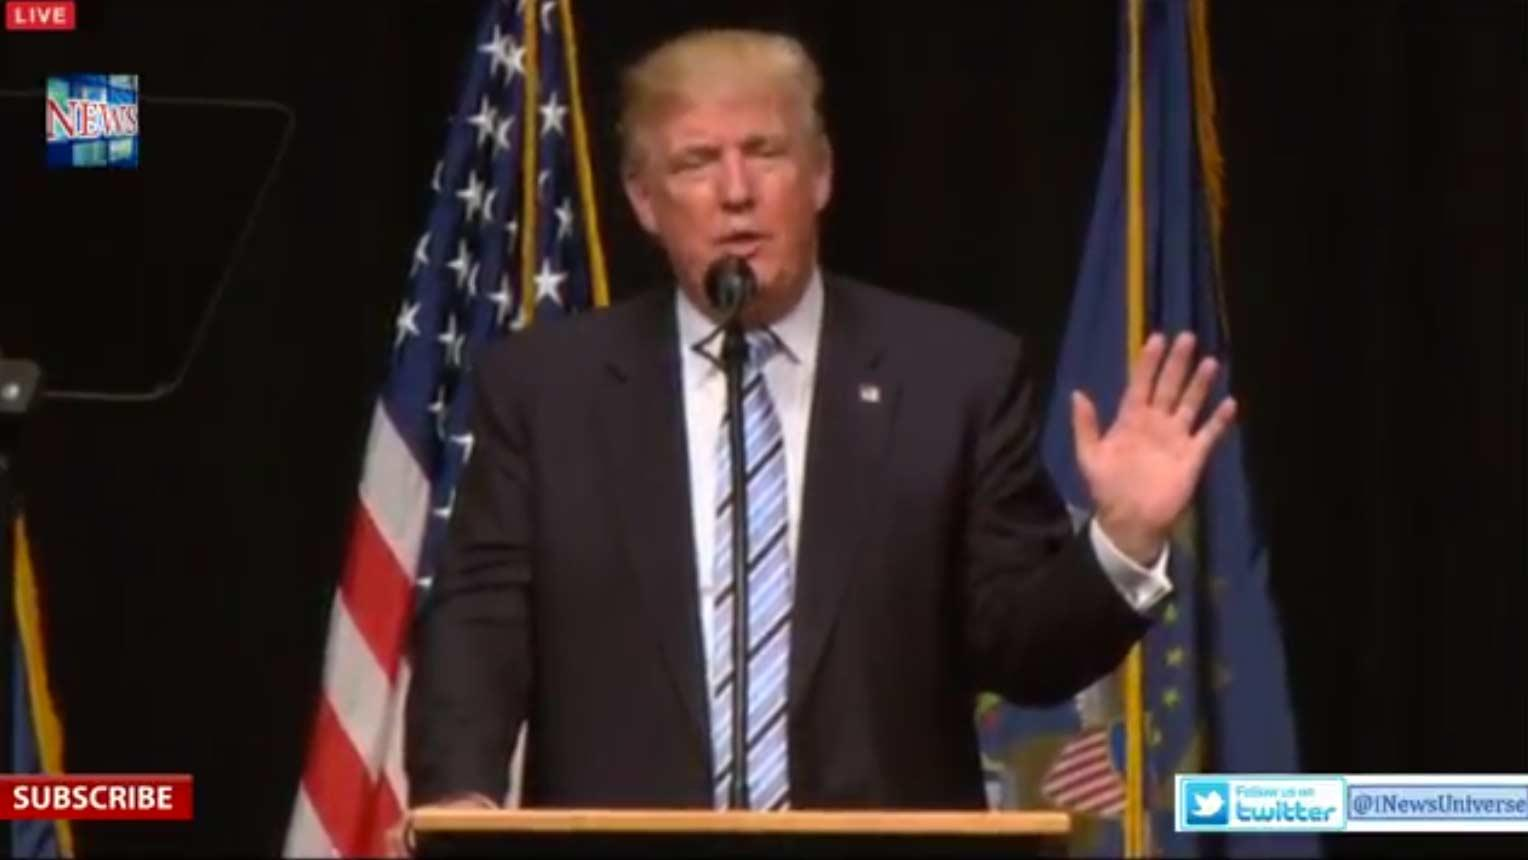 Watch LIVE Stream: Donald Trump Giving Speech At Petroleum Conference in Bismarck, North Dakota